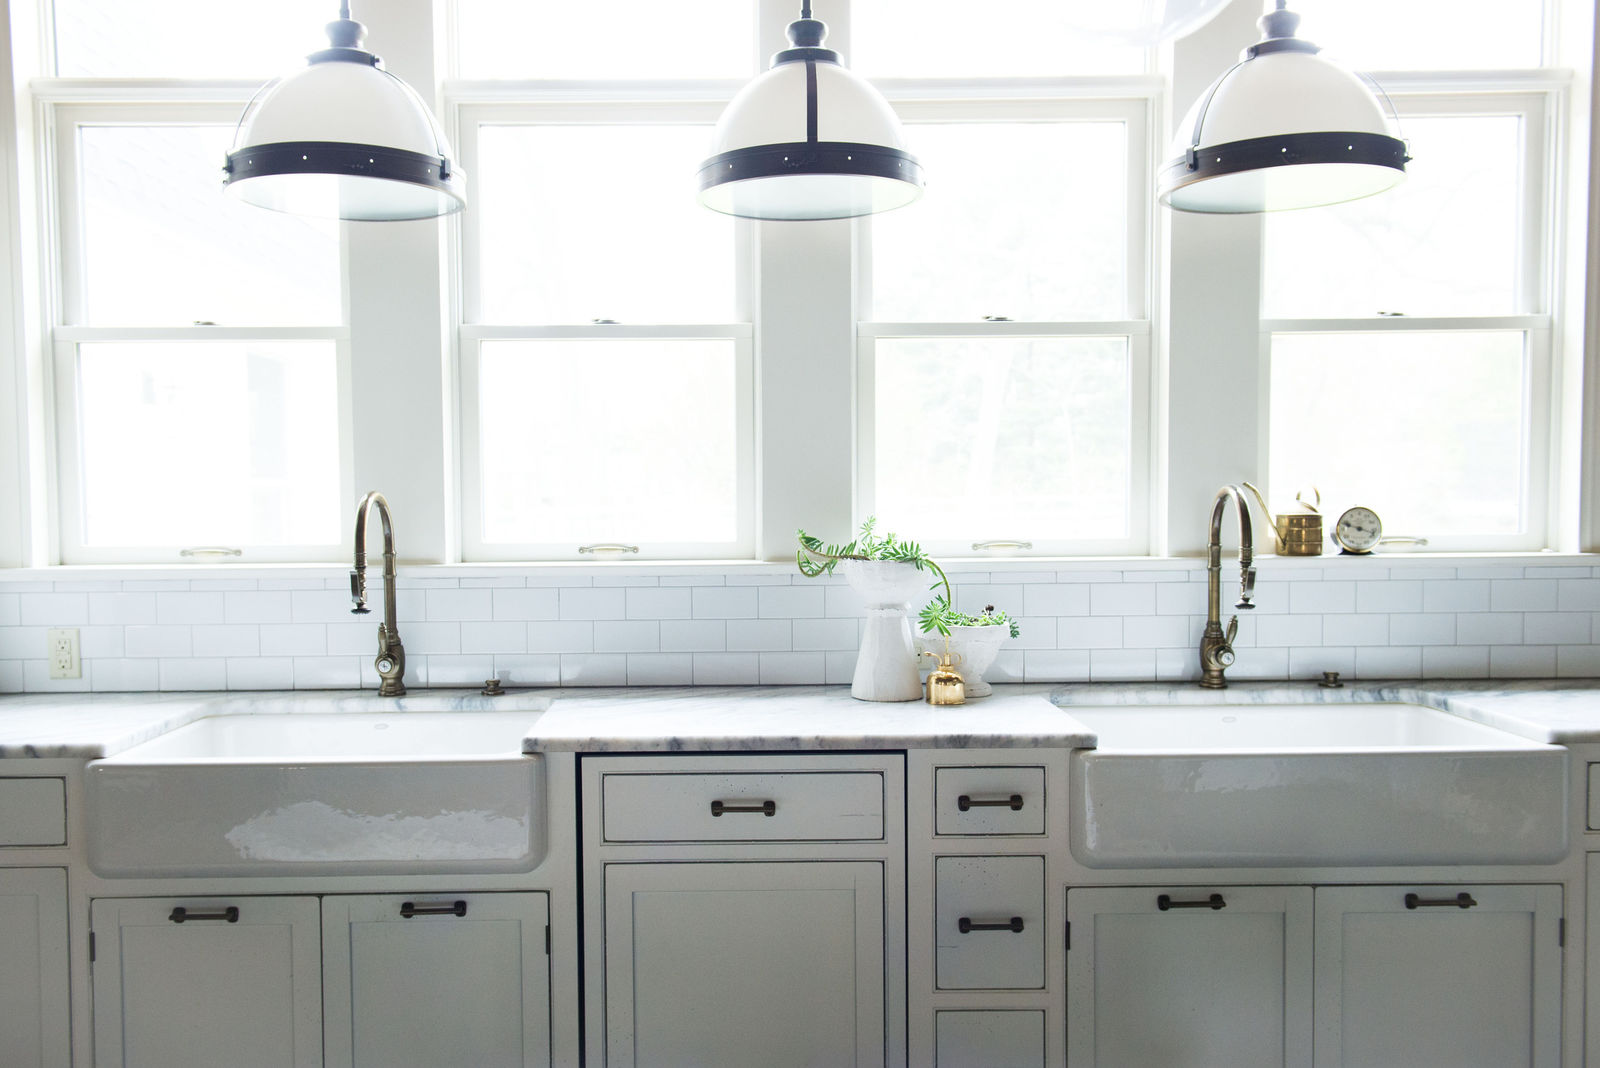 White kitchen with two farm sinks, subway tile, and large pendant lights. Leanne Ford.